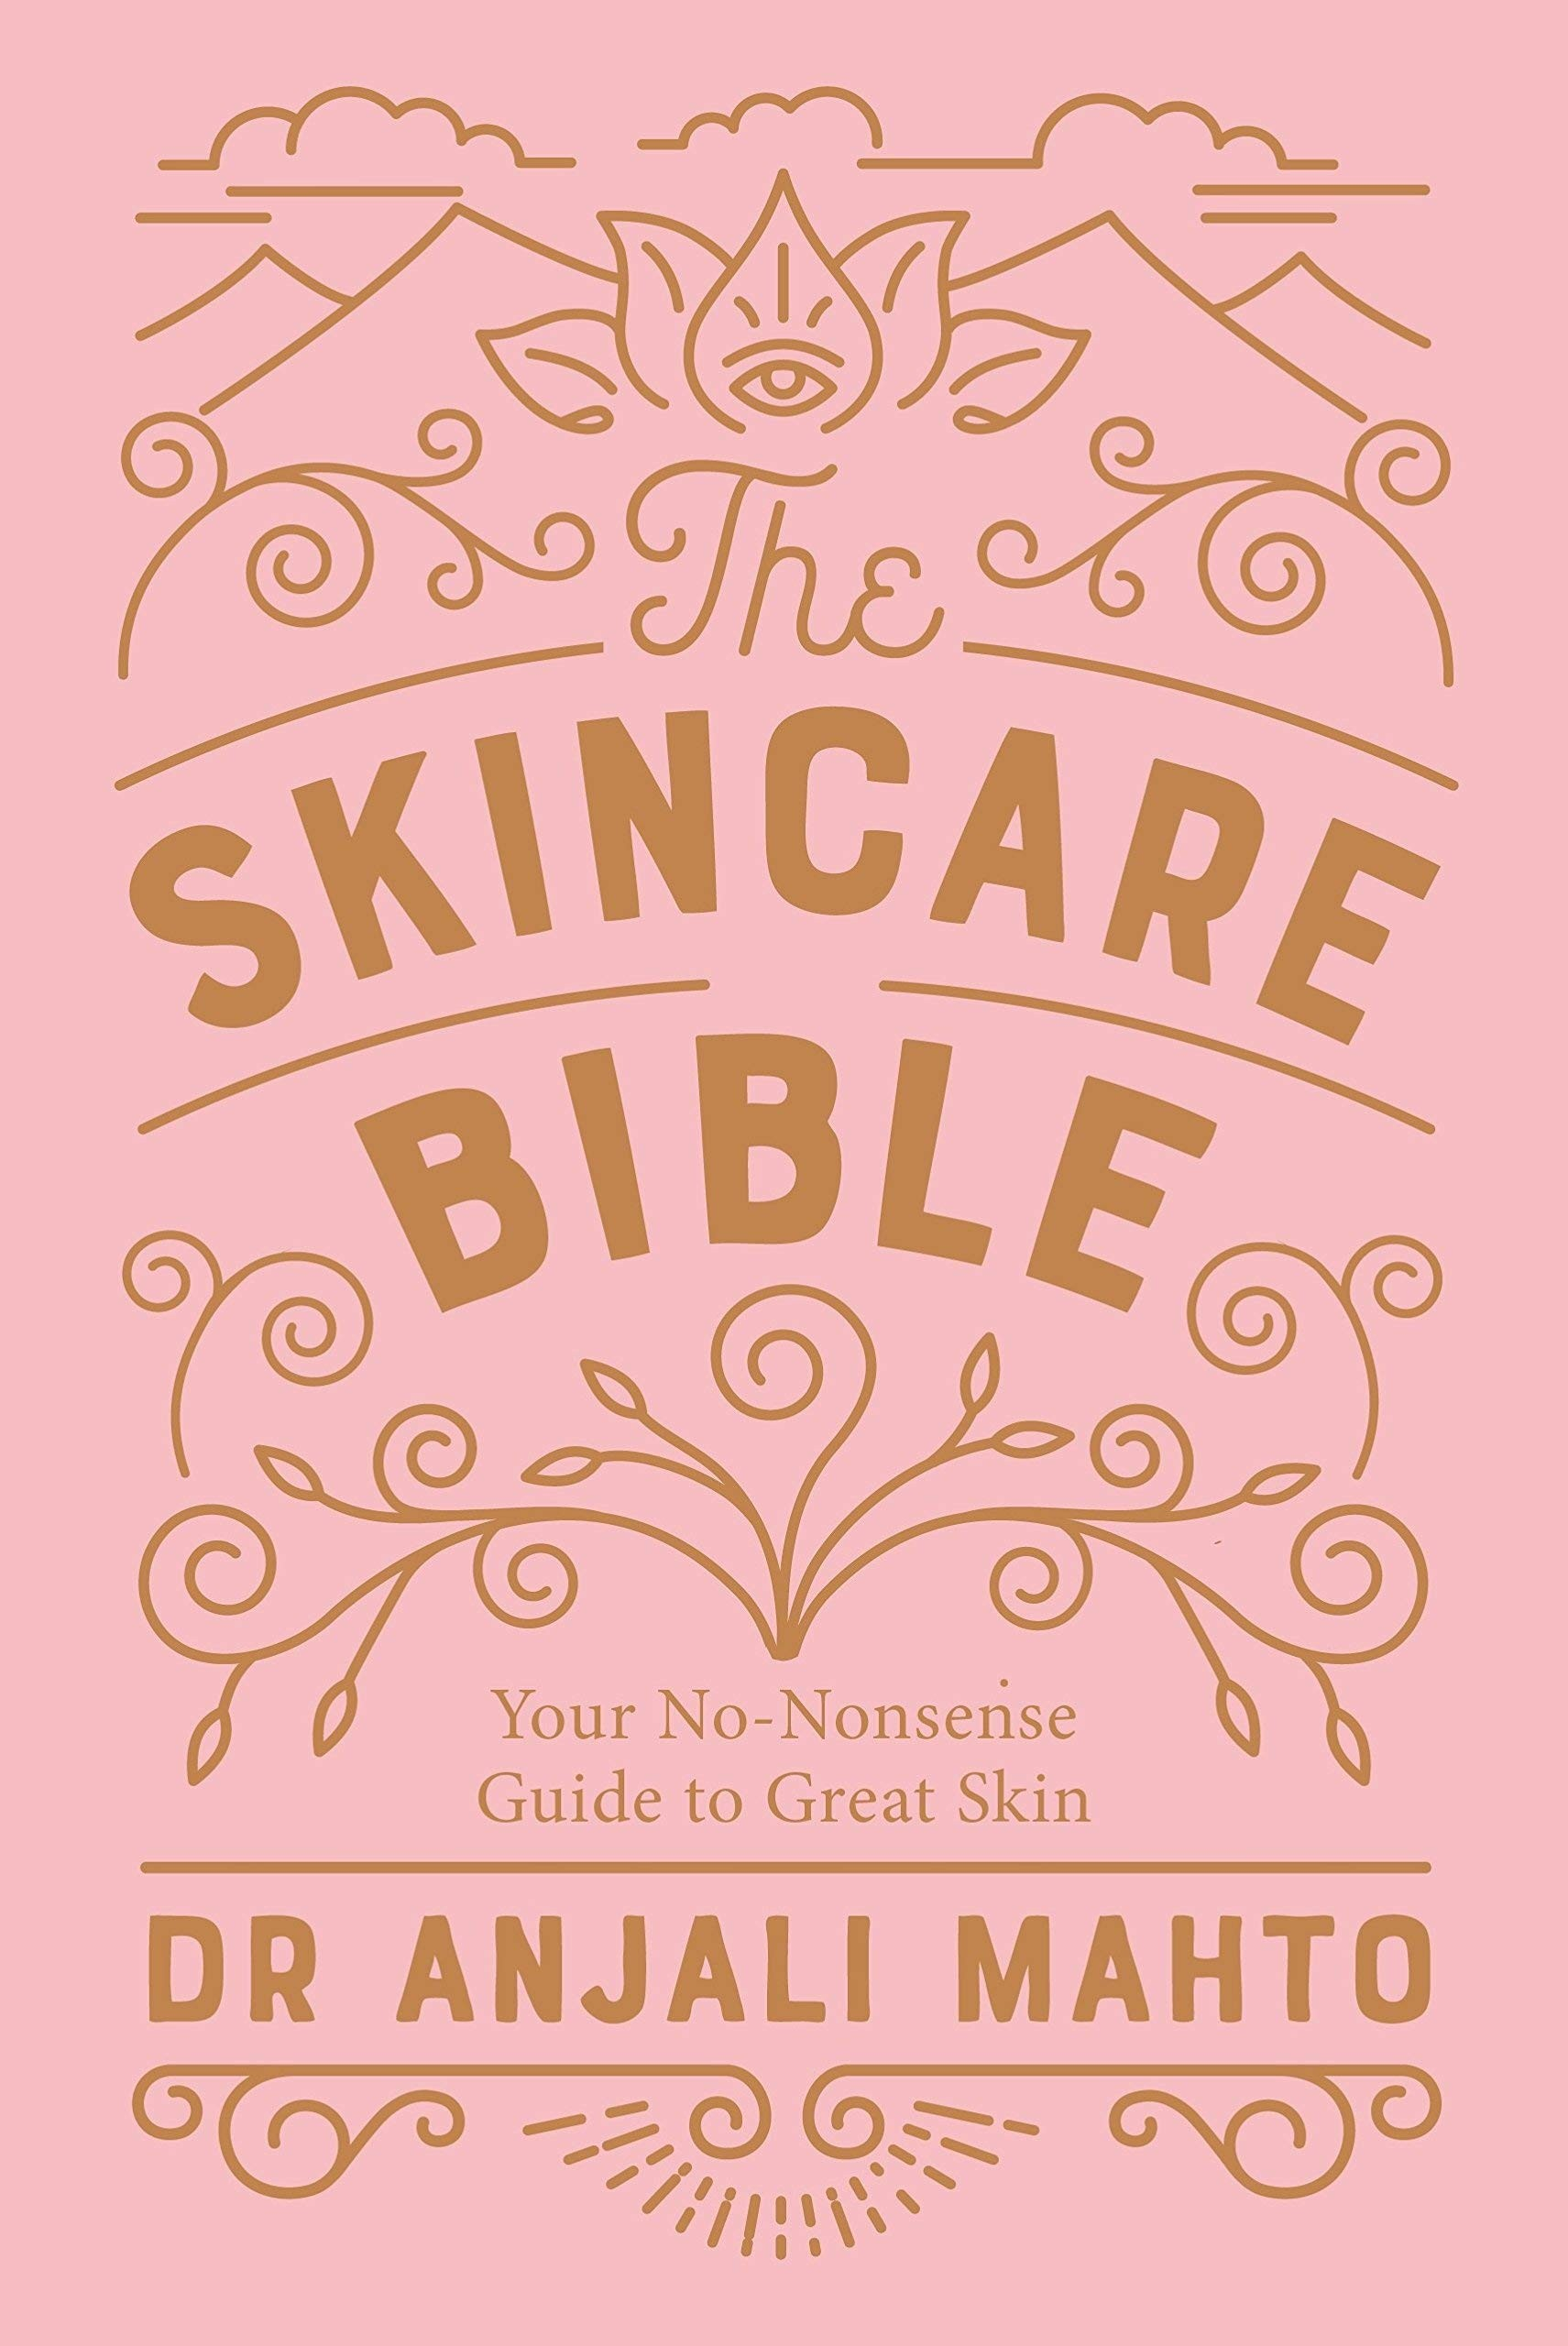 The Skincare Bible: Your No-Nonsense Guide to Great Skin R$ 70,26 (Kindle) (Foto: Reprodução)